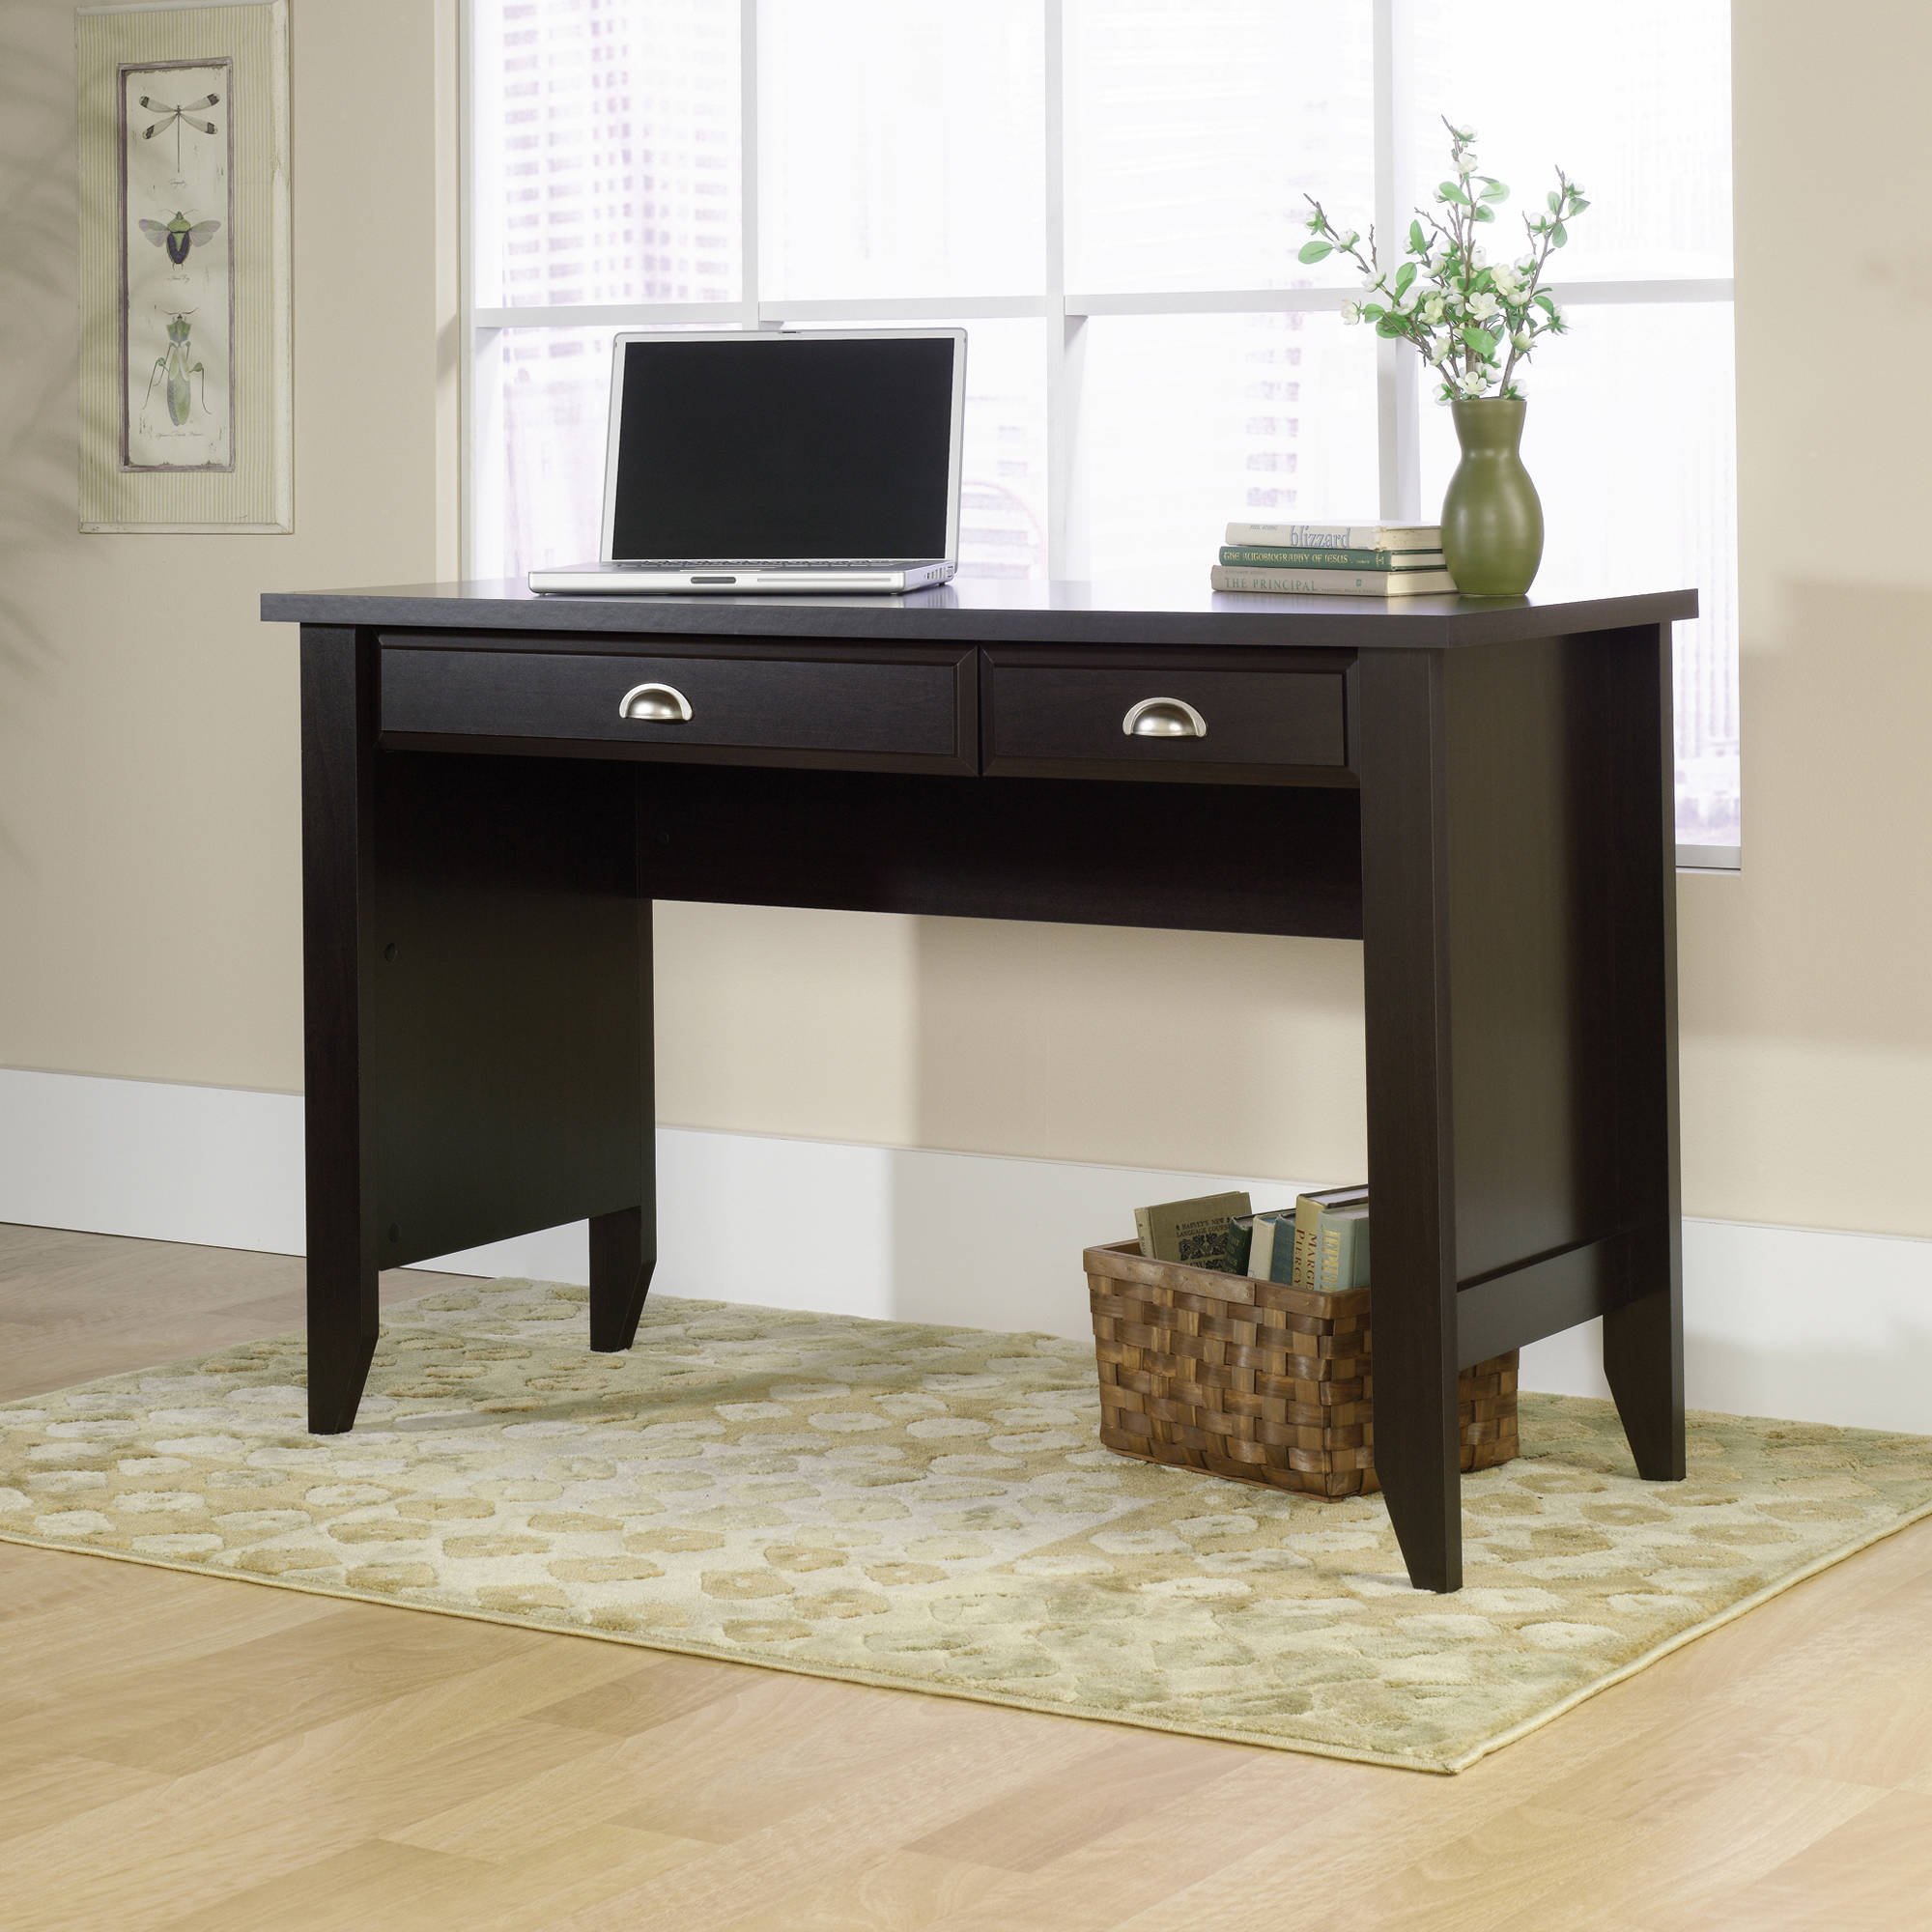 Table Furniture office furniture